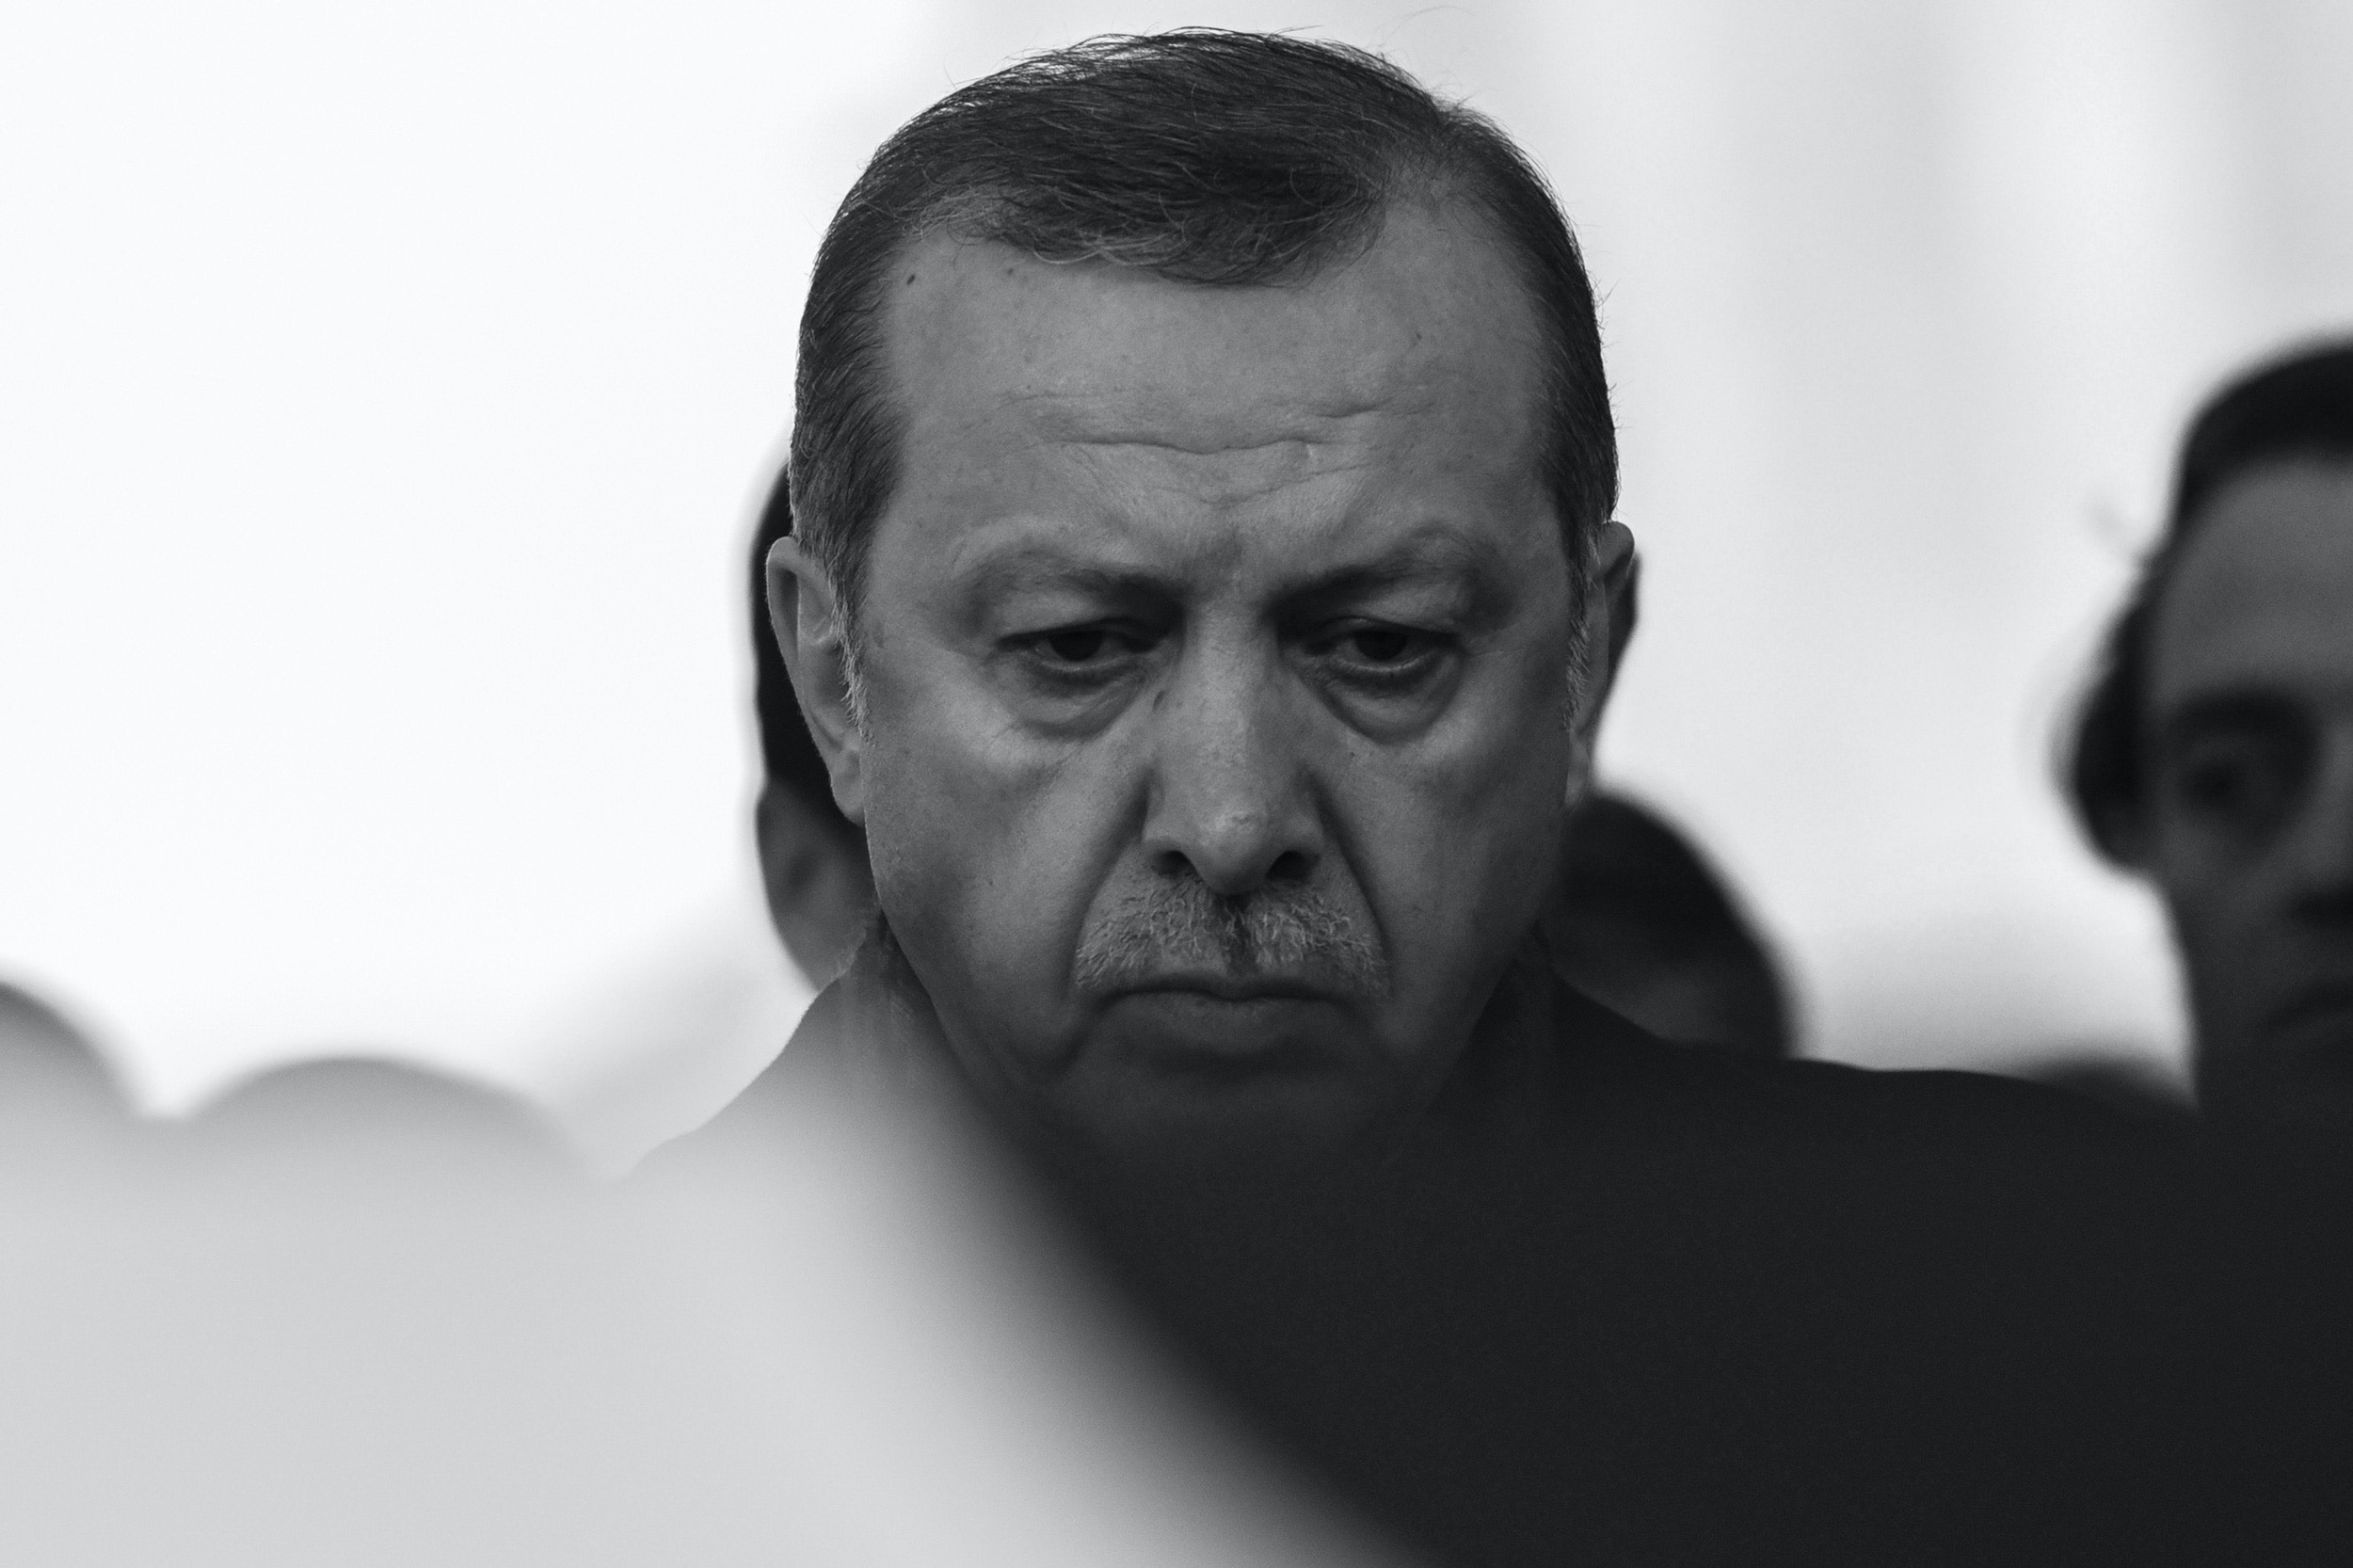 Turkish President Recep Tayyip Erdogan attends the funeral of Turkish police officer Hasim Usta, who was killed in the December 10 blasts outside Besiktas' Vodafone Arena football stadium, on December 12, 2016 in Istanbul. The death toll from the Istanbul twin bombings near the major football stadium has risen to 44, Turkish Health Minister Recep Akdag said on December 12. / AFP / OZAN KOSE (Photo credit should read OZAN KOSE/AFP via Getty Images)